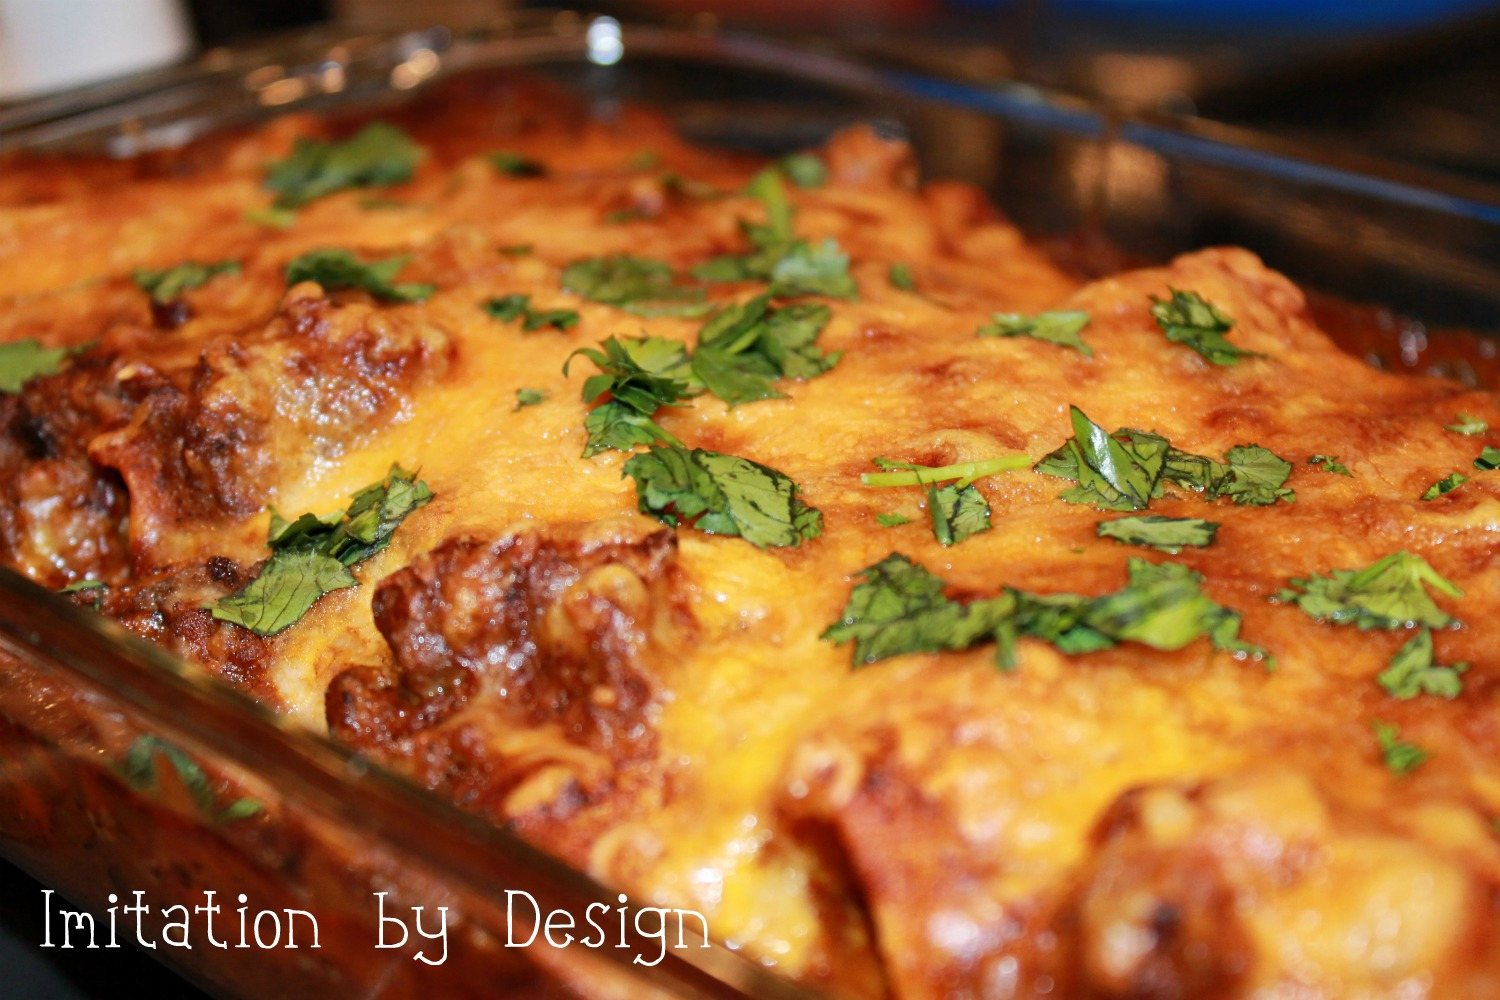 Imitation by Design: Tex-Mex Beefy Enchiladas